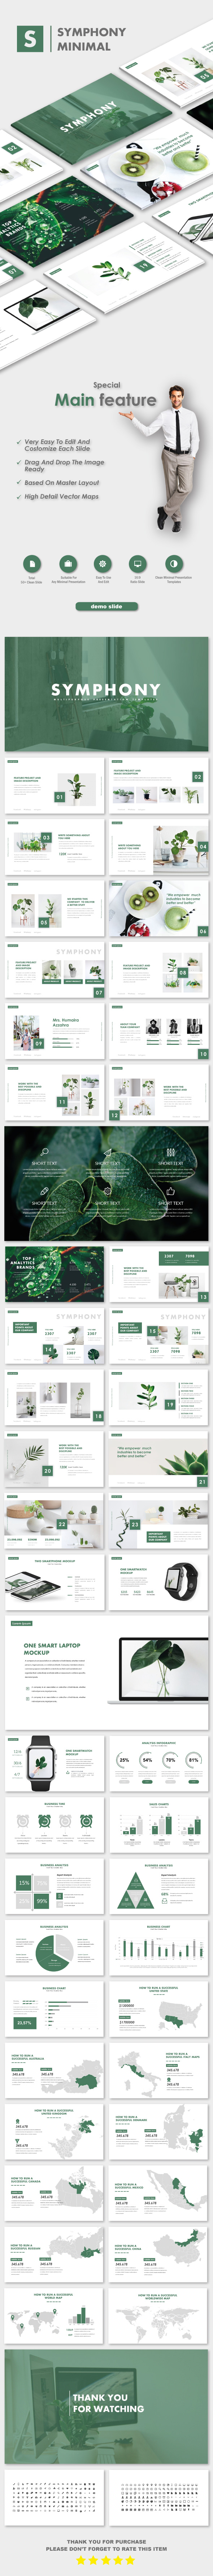 Symphony MNML Keynote Templates - Nature Keynote Templates